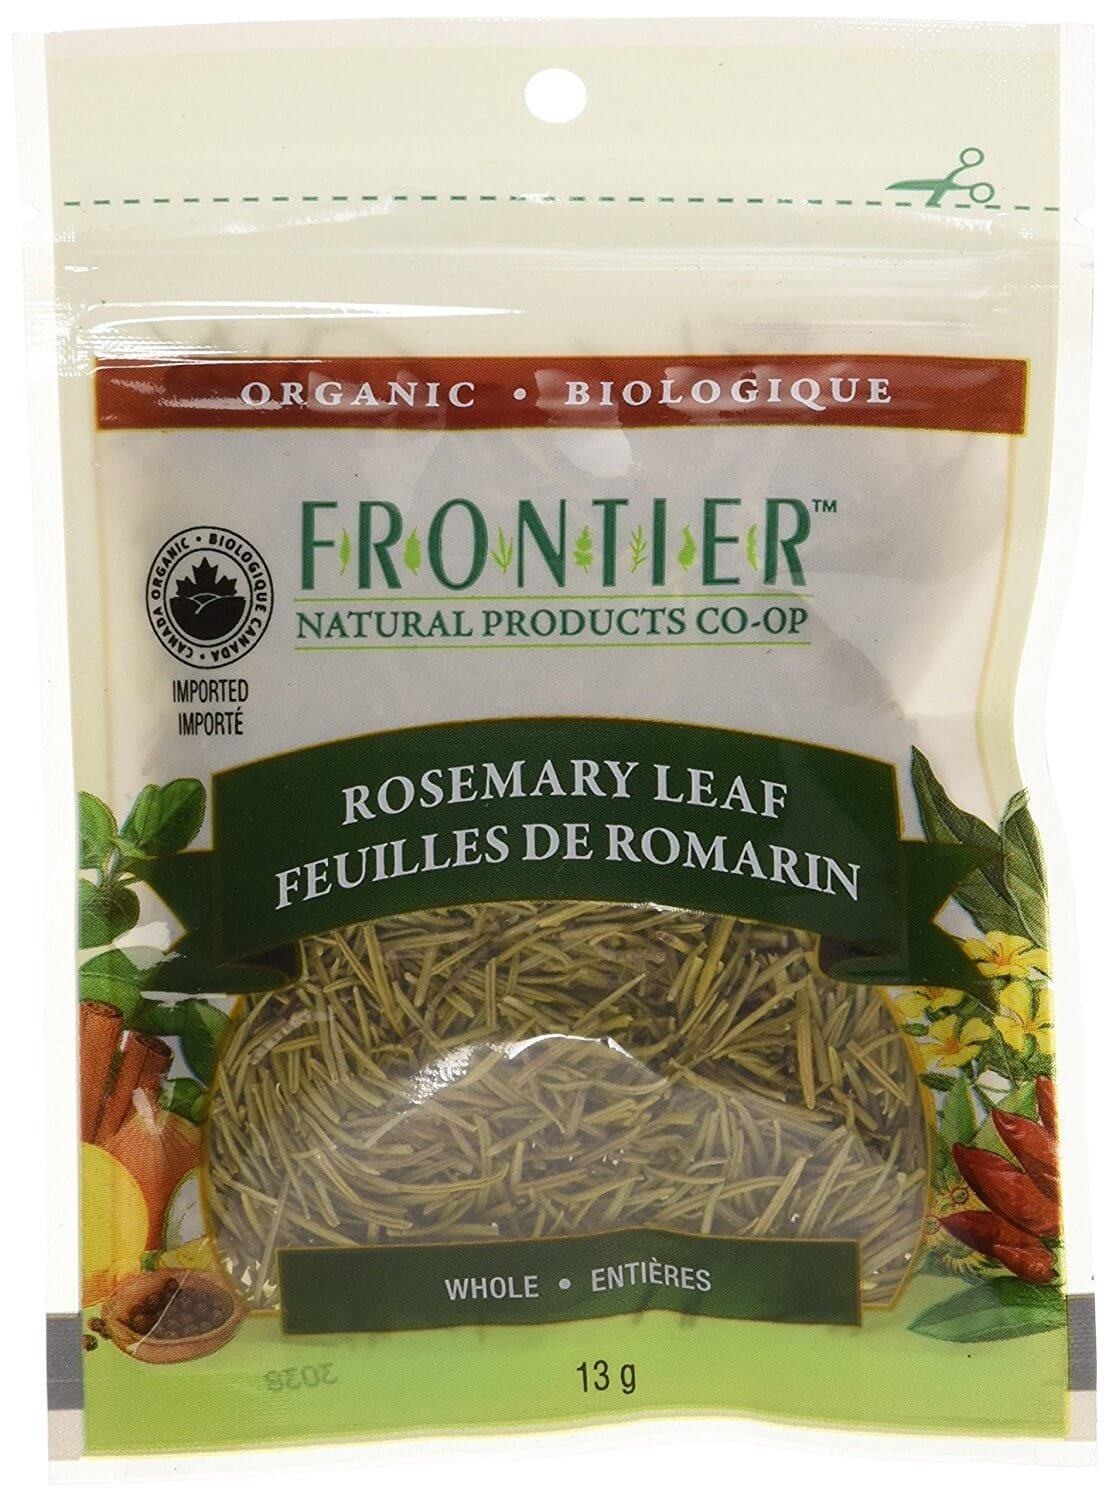 Food & Drink - Frontier Co-Op - Organic Whole Rosemary Leaf, 13g